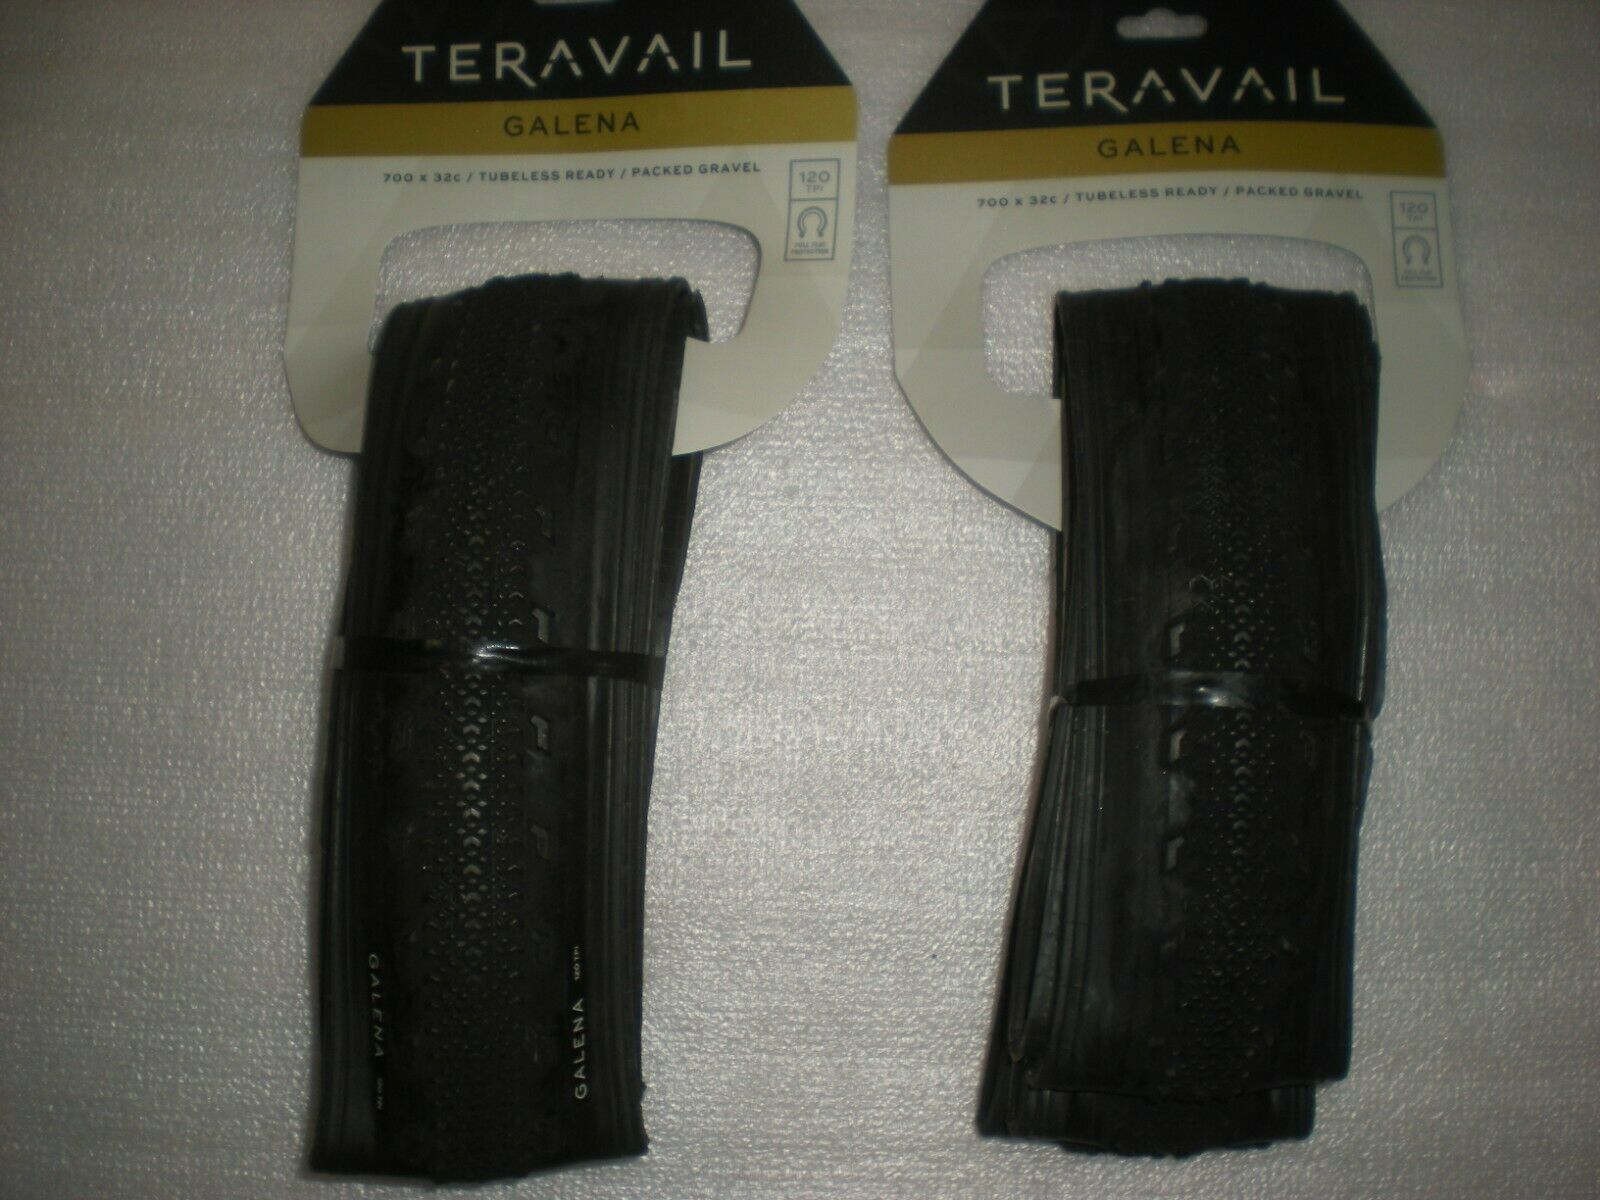 Teravail Galena 700 x 32 Tubeless 120 tpi Folding Gravel PAIR of Tires NEW